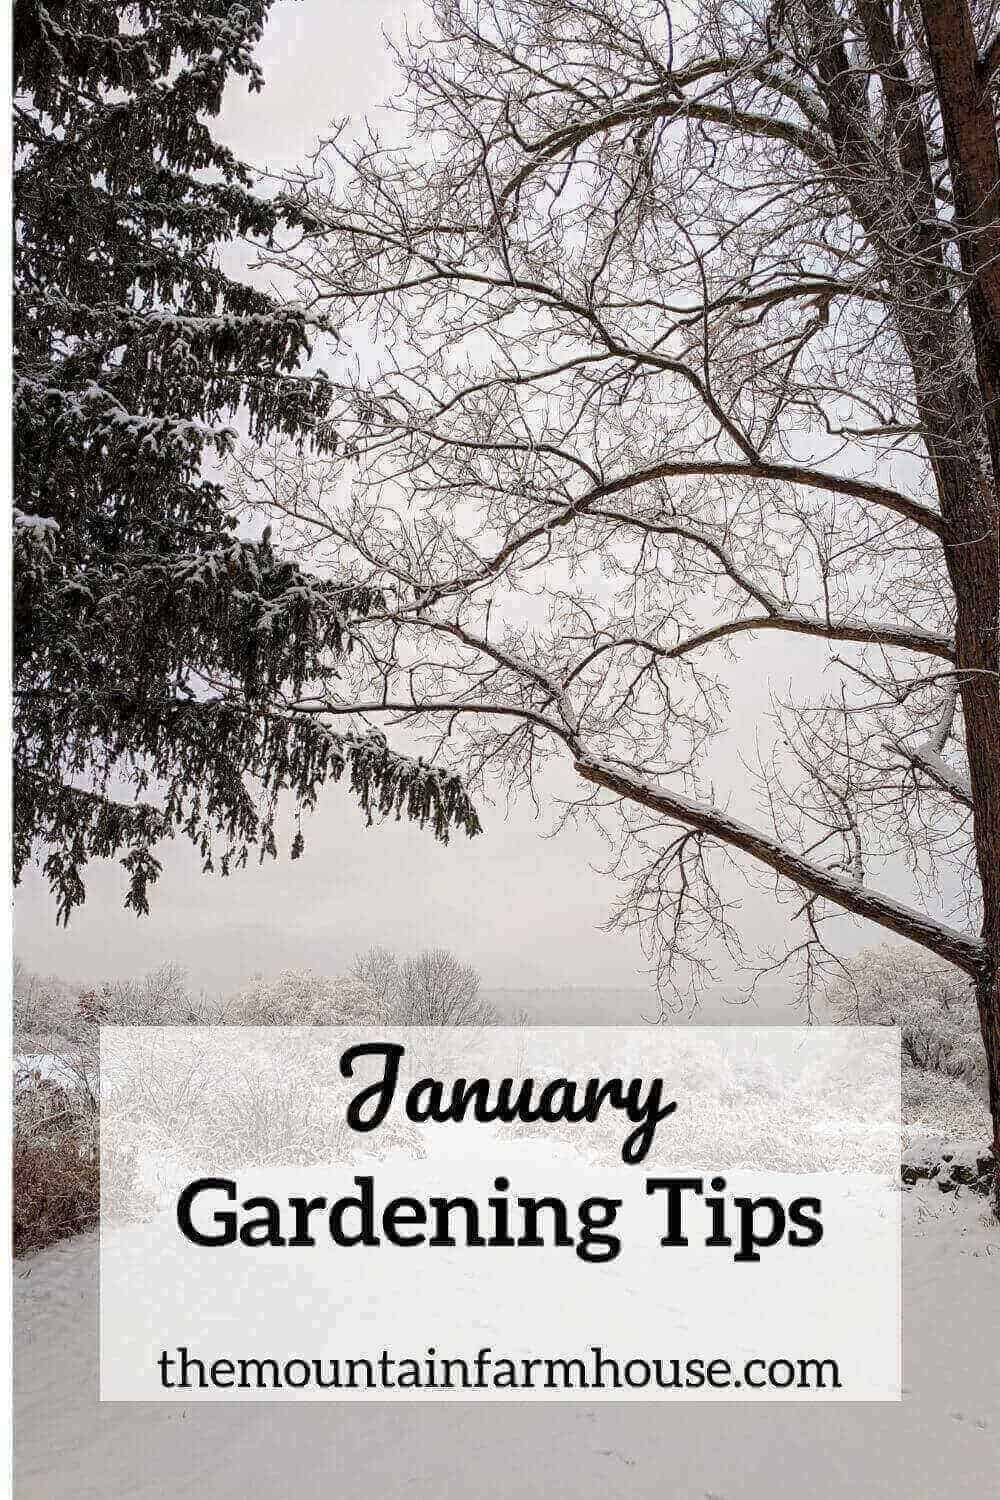 January Gardening Tips pin picture of snowy trees